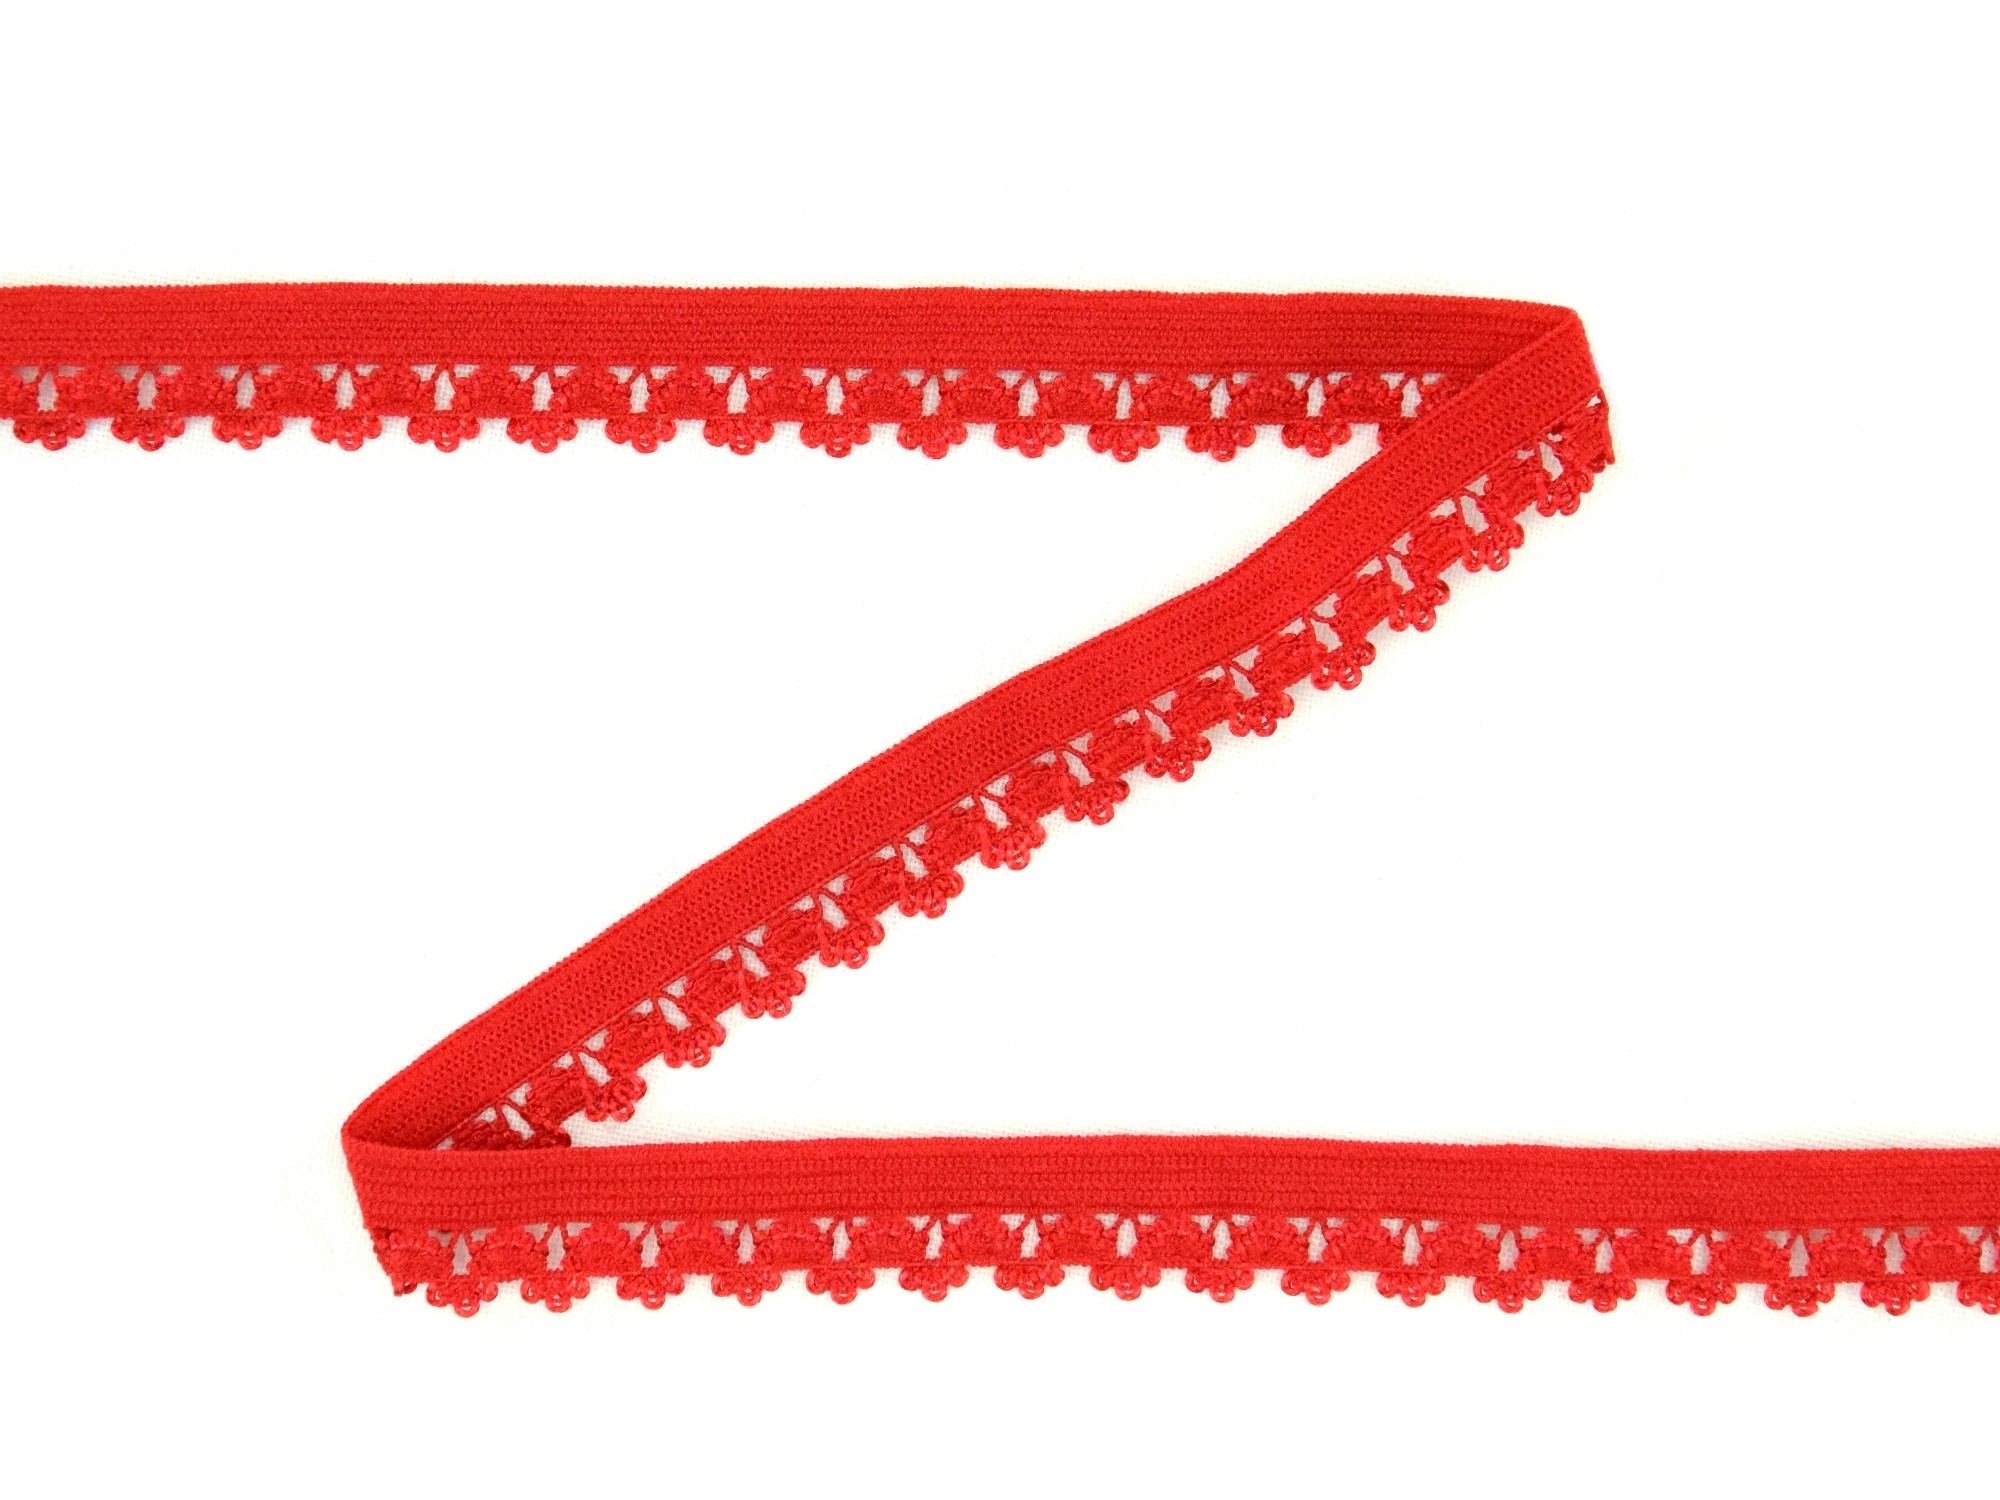 Elastic Binding Ribbon with flowers, red 14 mm